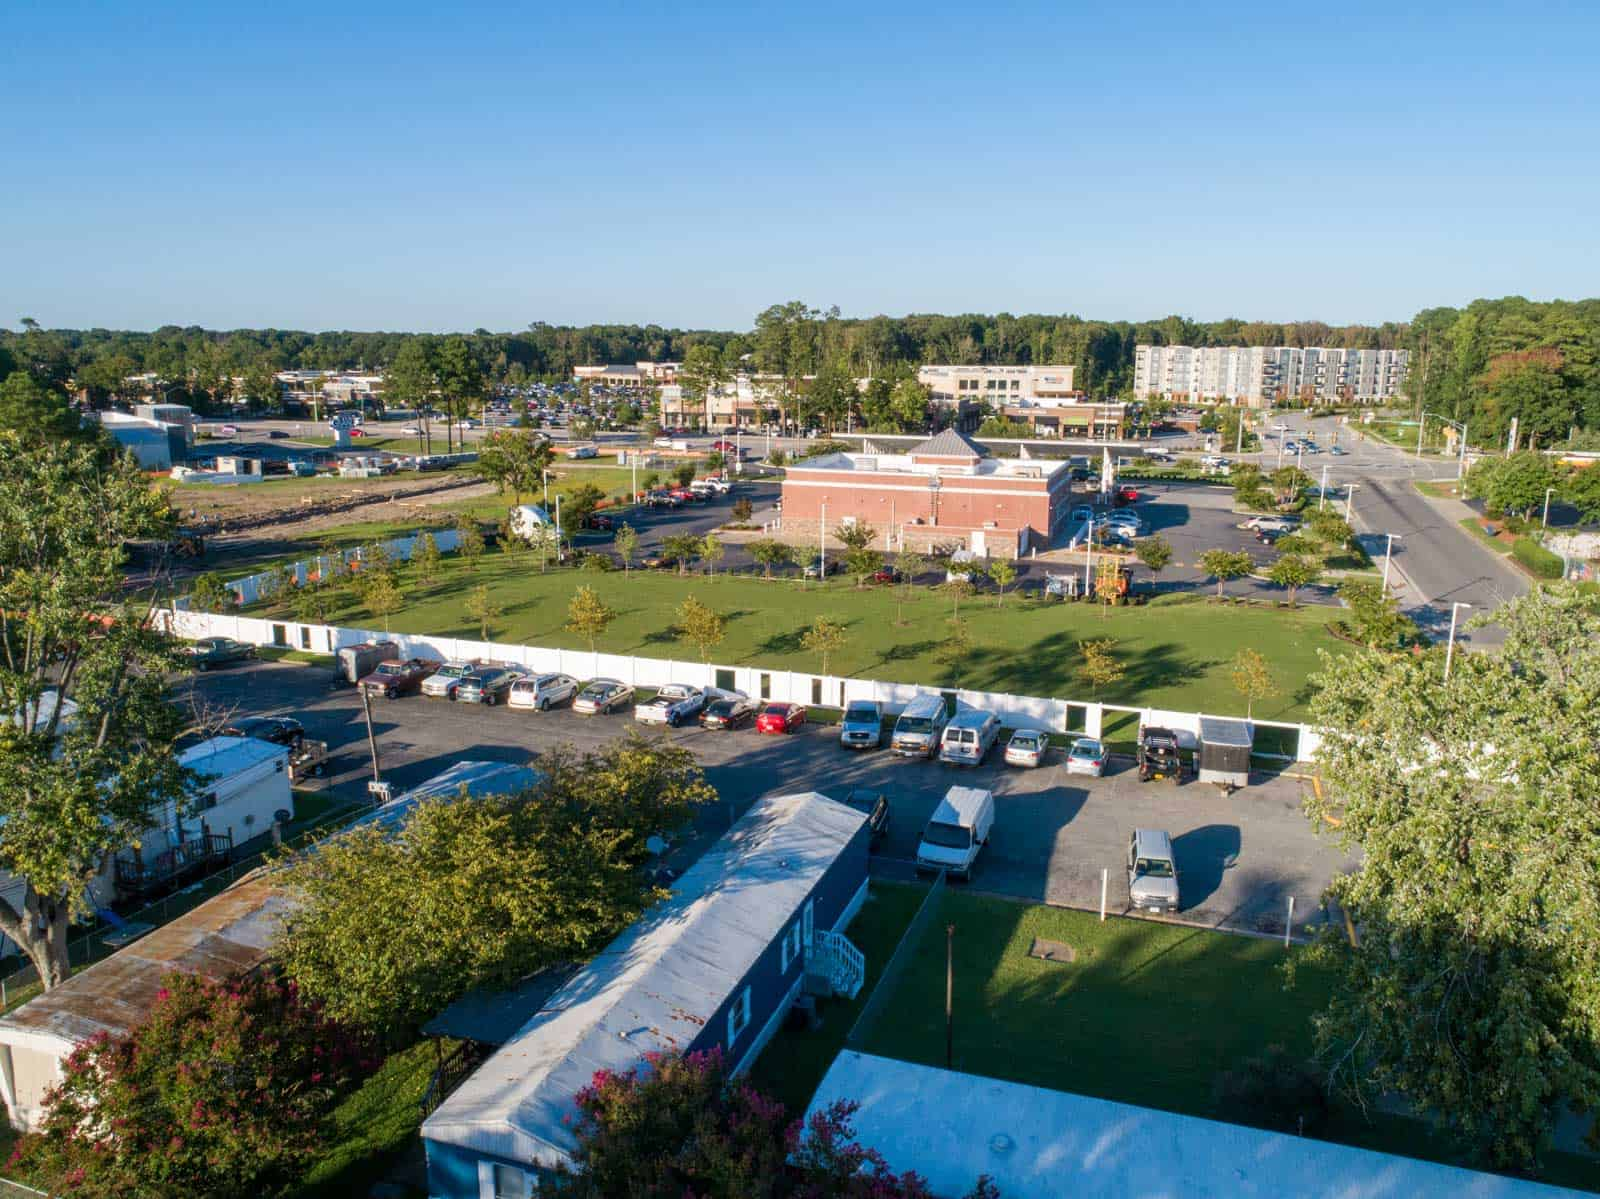 aerial drone photo of tech center building taken from above mobile home community in Newport News, VA